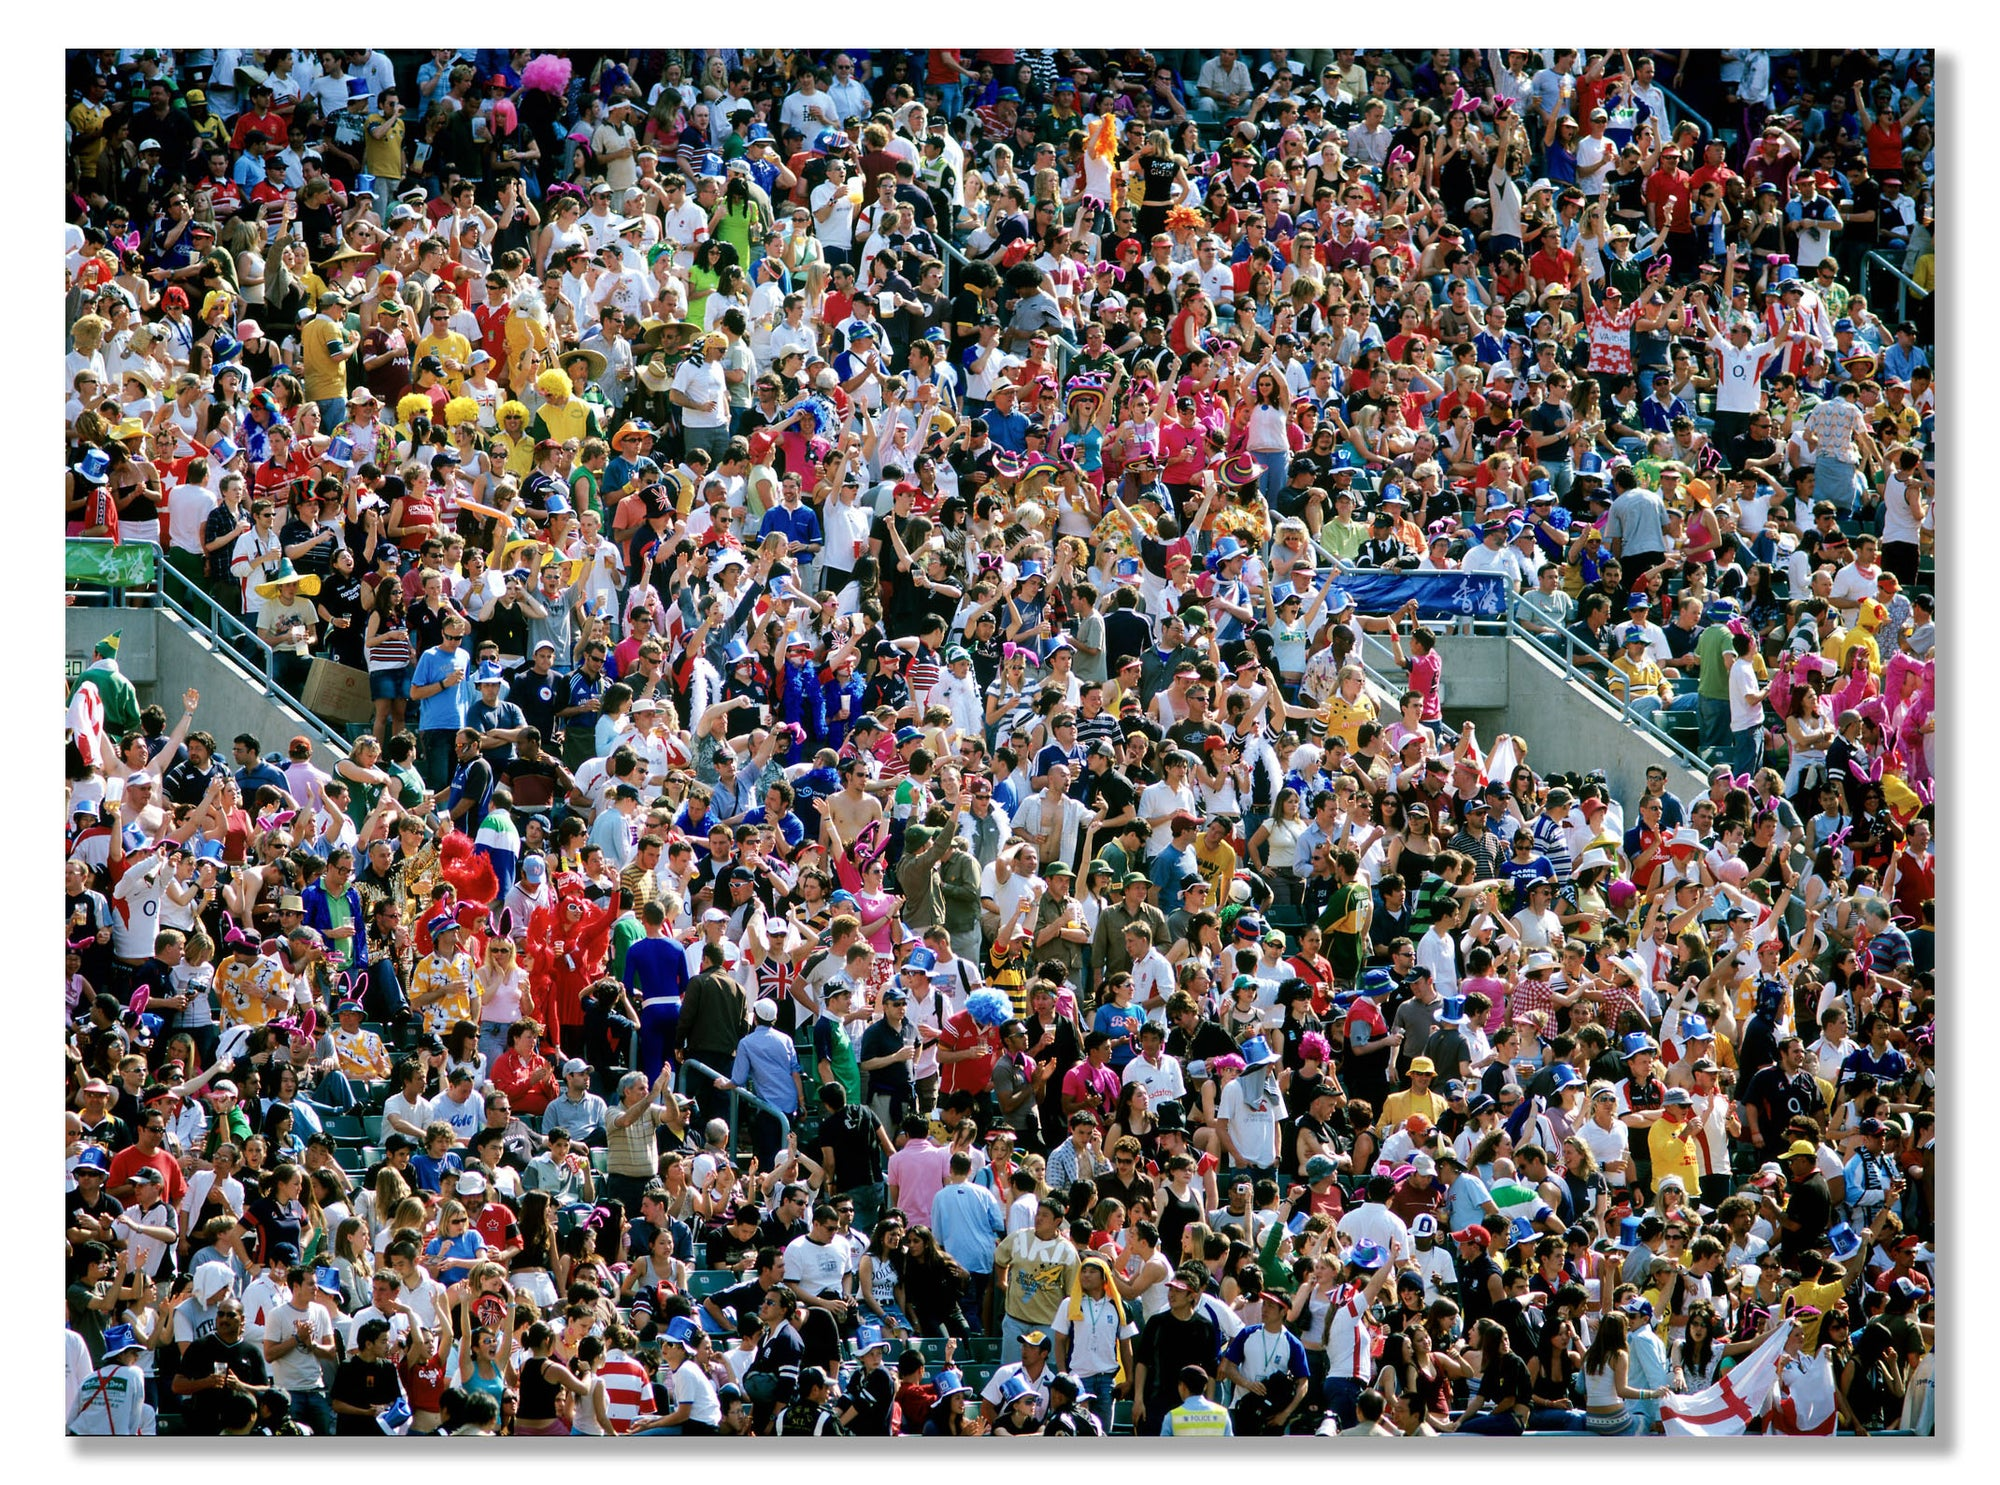 South Stand, Hong Kong Sevens